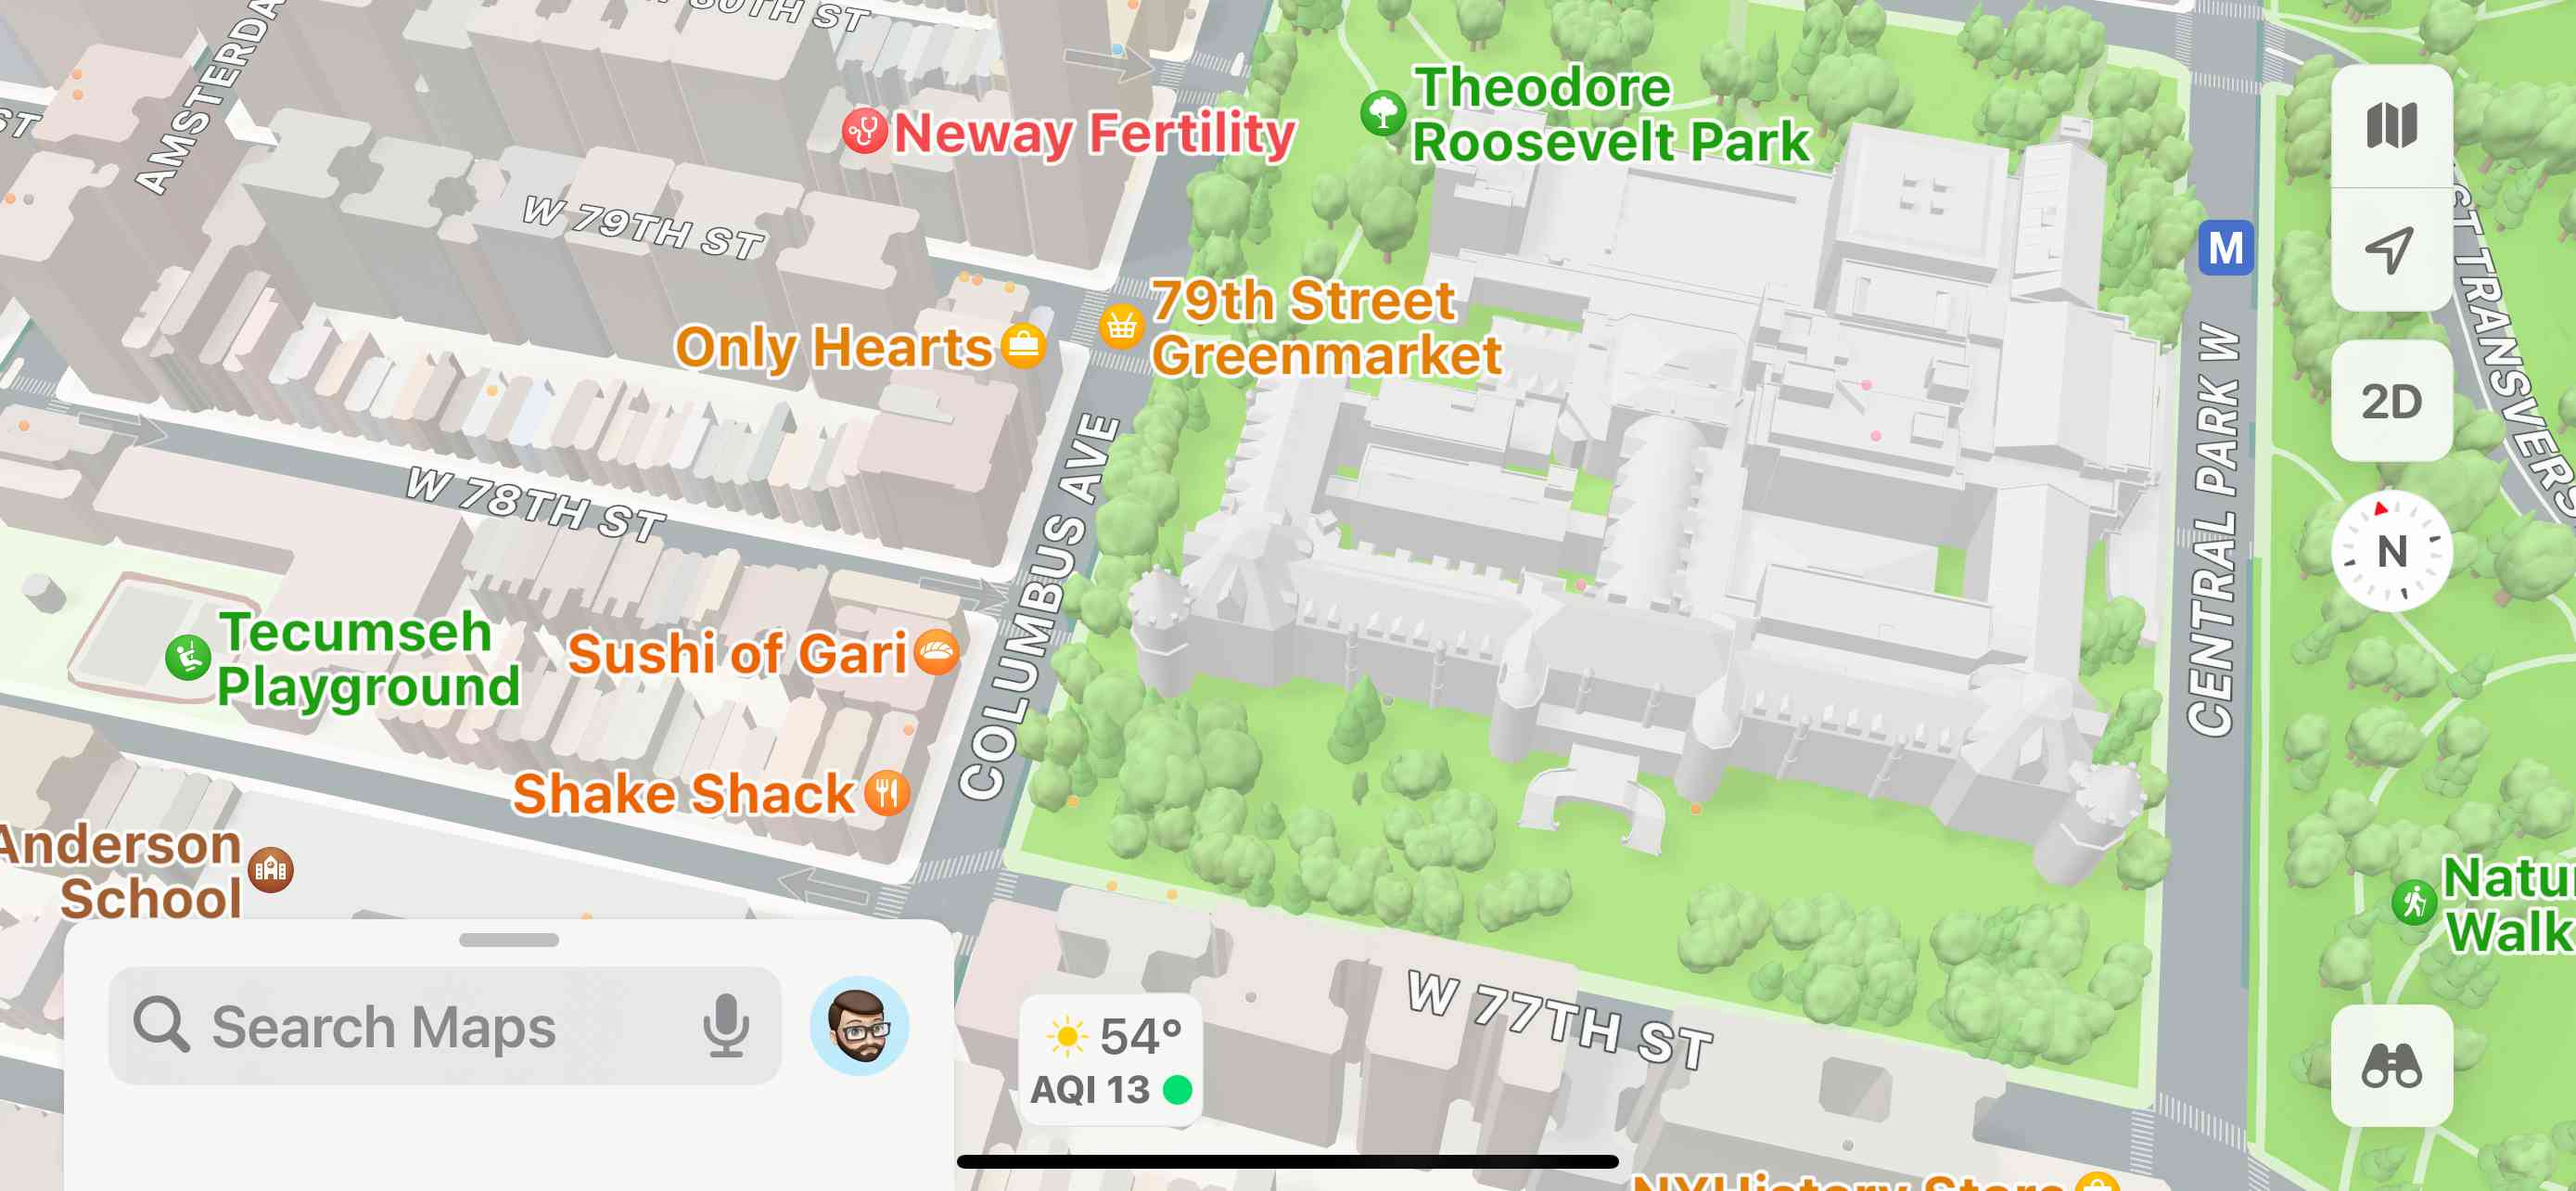 A landscape screenshot of Apple Maps showing an area in New York City.